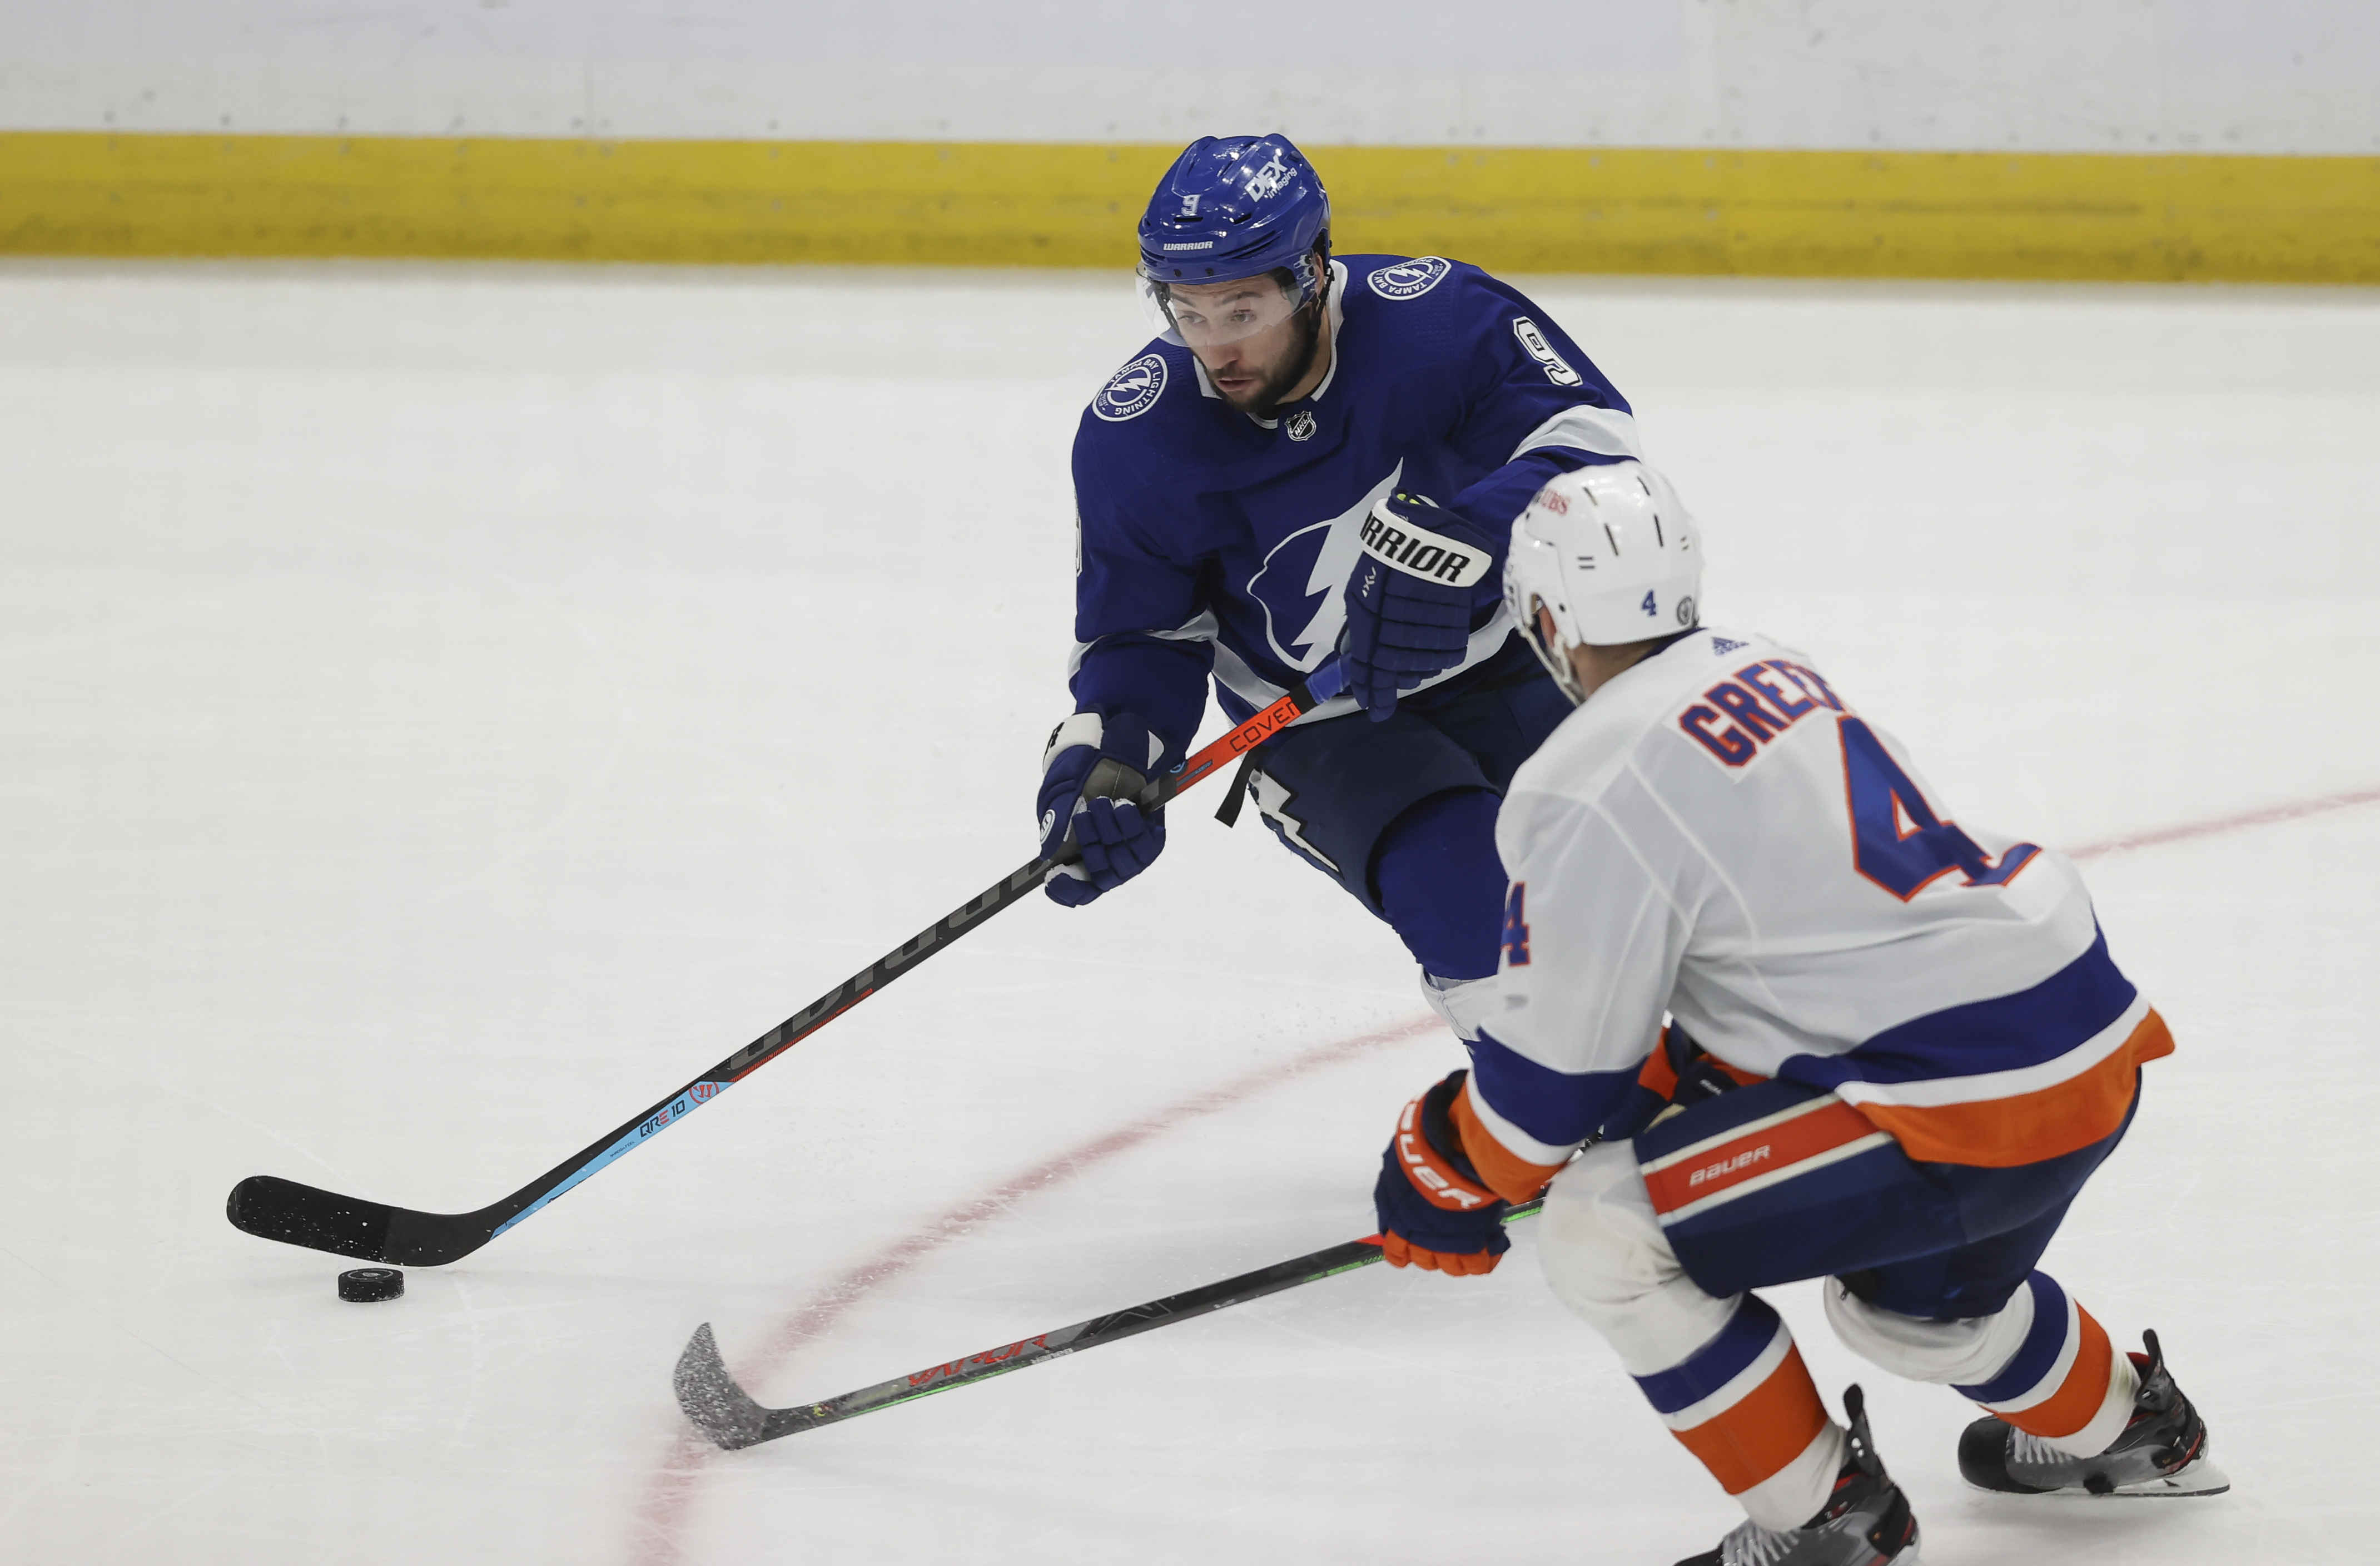 Tampa Bay Lightning center Tyler Johnson (9) skates against New York Islanders defenseman Andy Greene (4) in the third period of Game 5 of the Stanley Cup Playoffs Semifinals between the New York Islanders and Tampa Bay Lightning on June 21, 2021 at Amalie Arena in Tampa, FL.